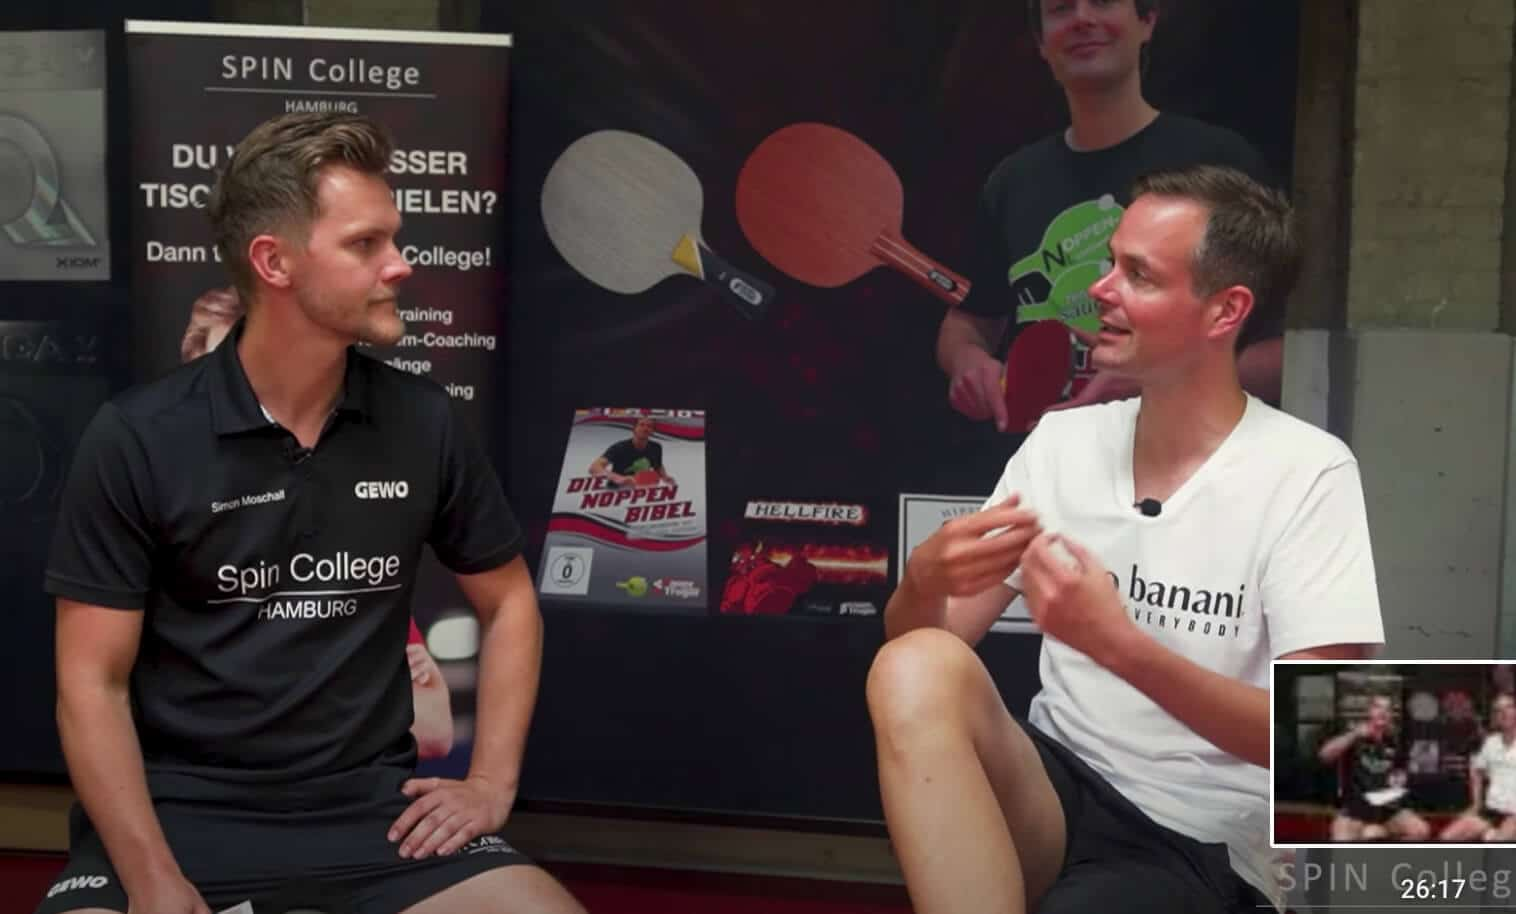 Table tennis pimples Interview Sebastian Sauer and Simon Moschall